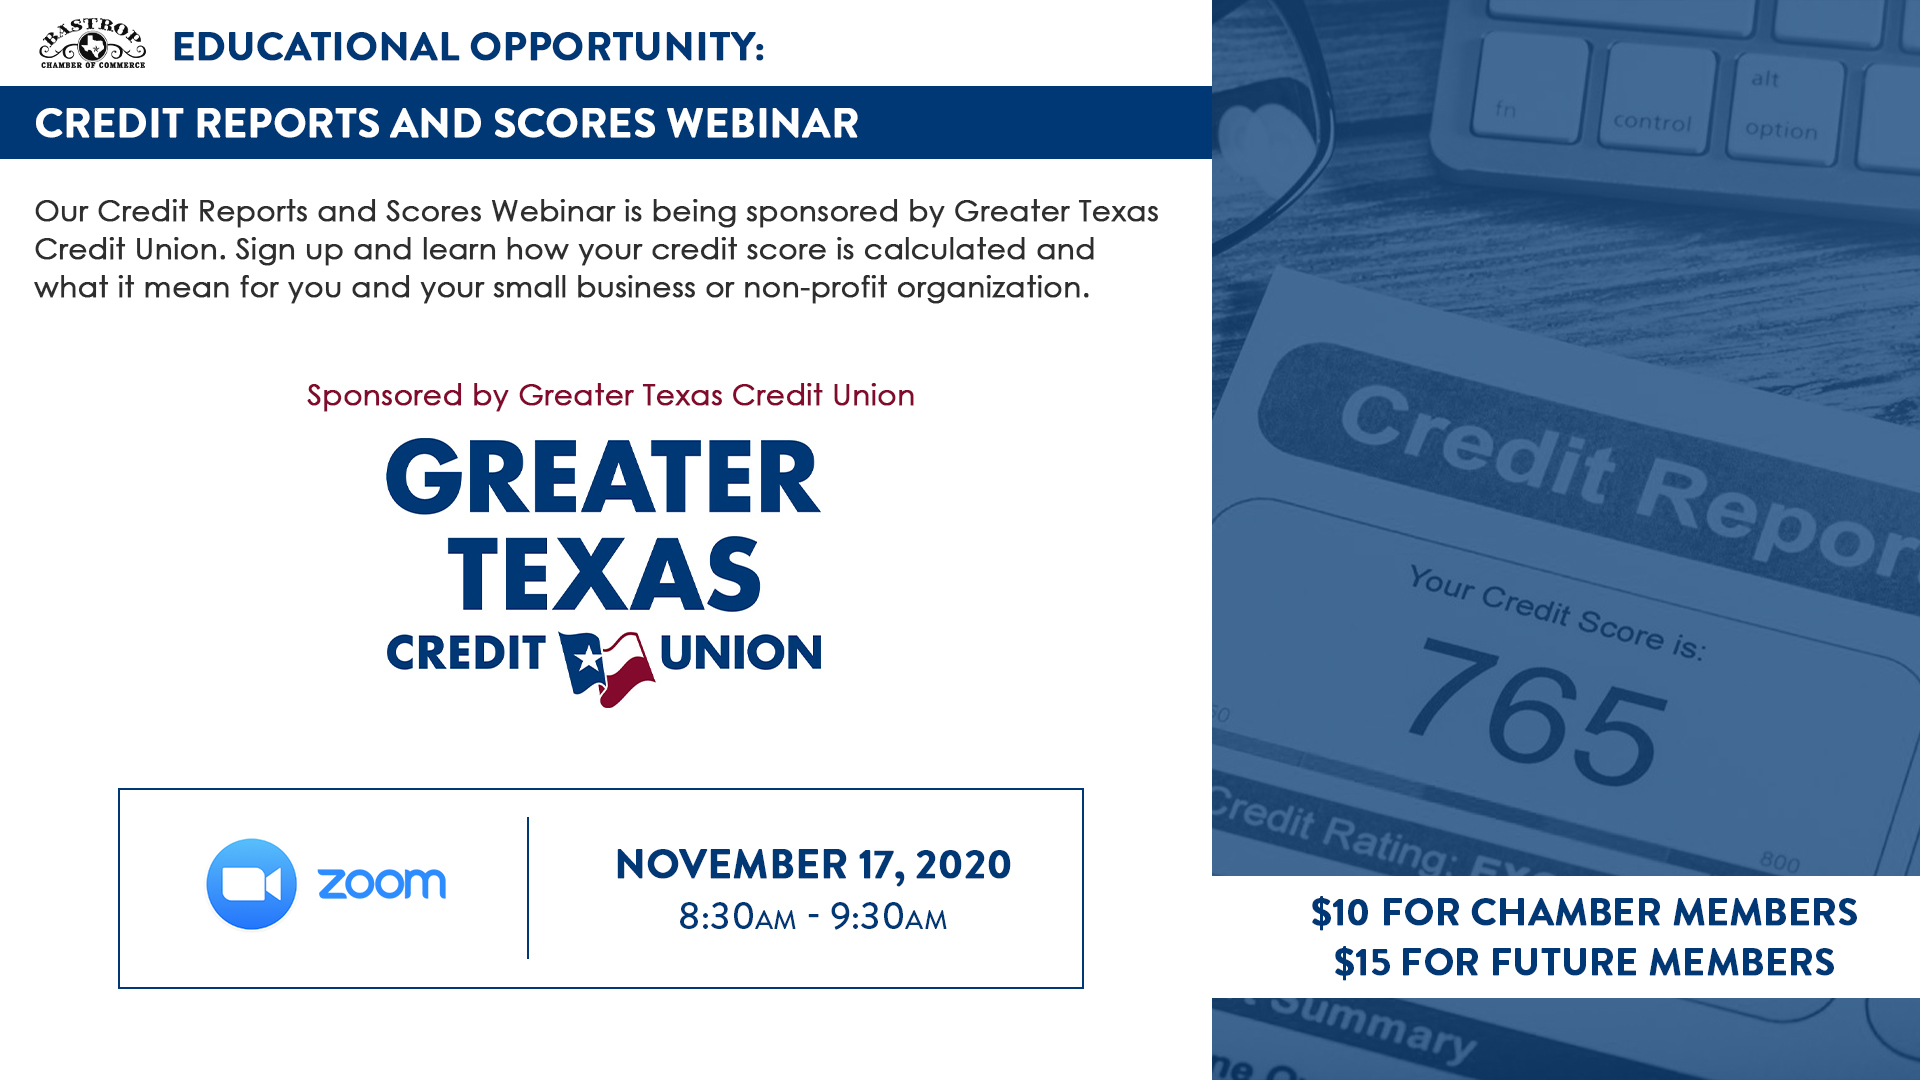 Credit Reports and Scores Webinar